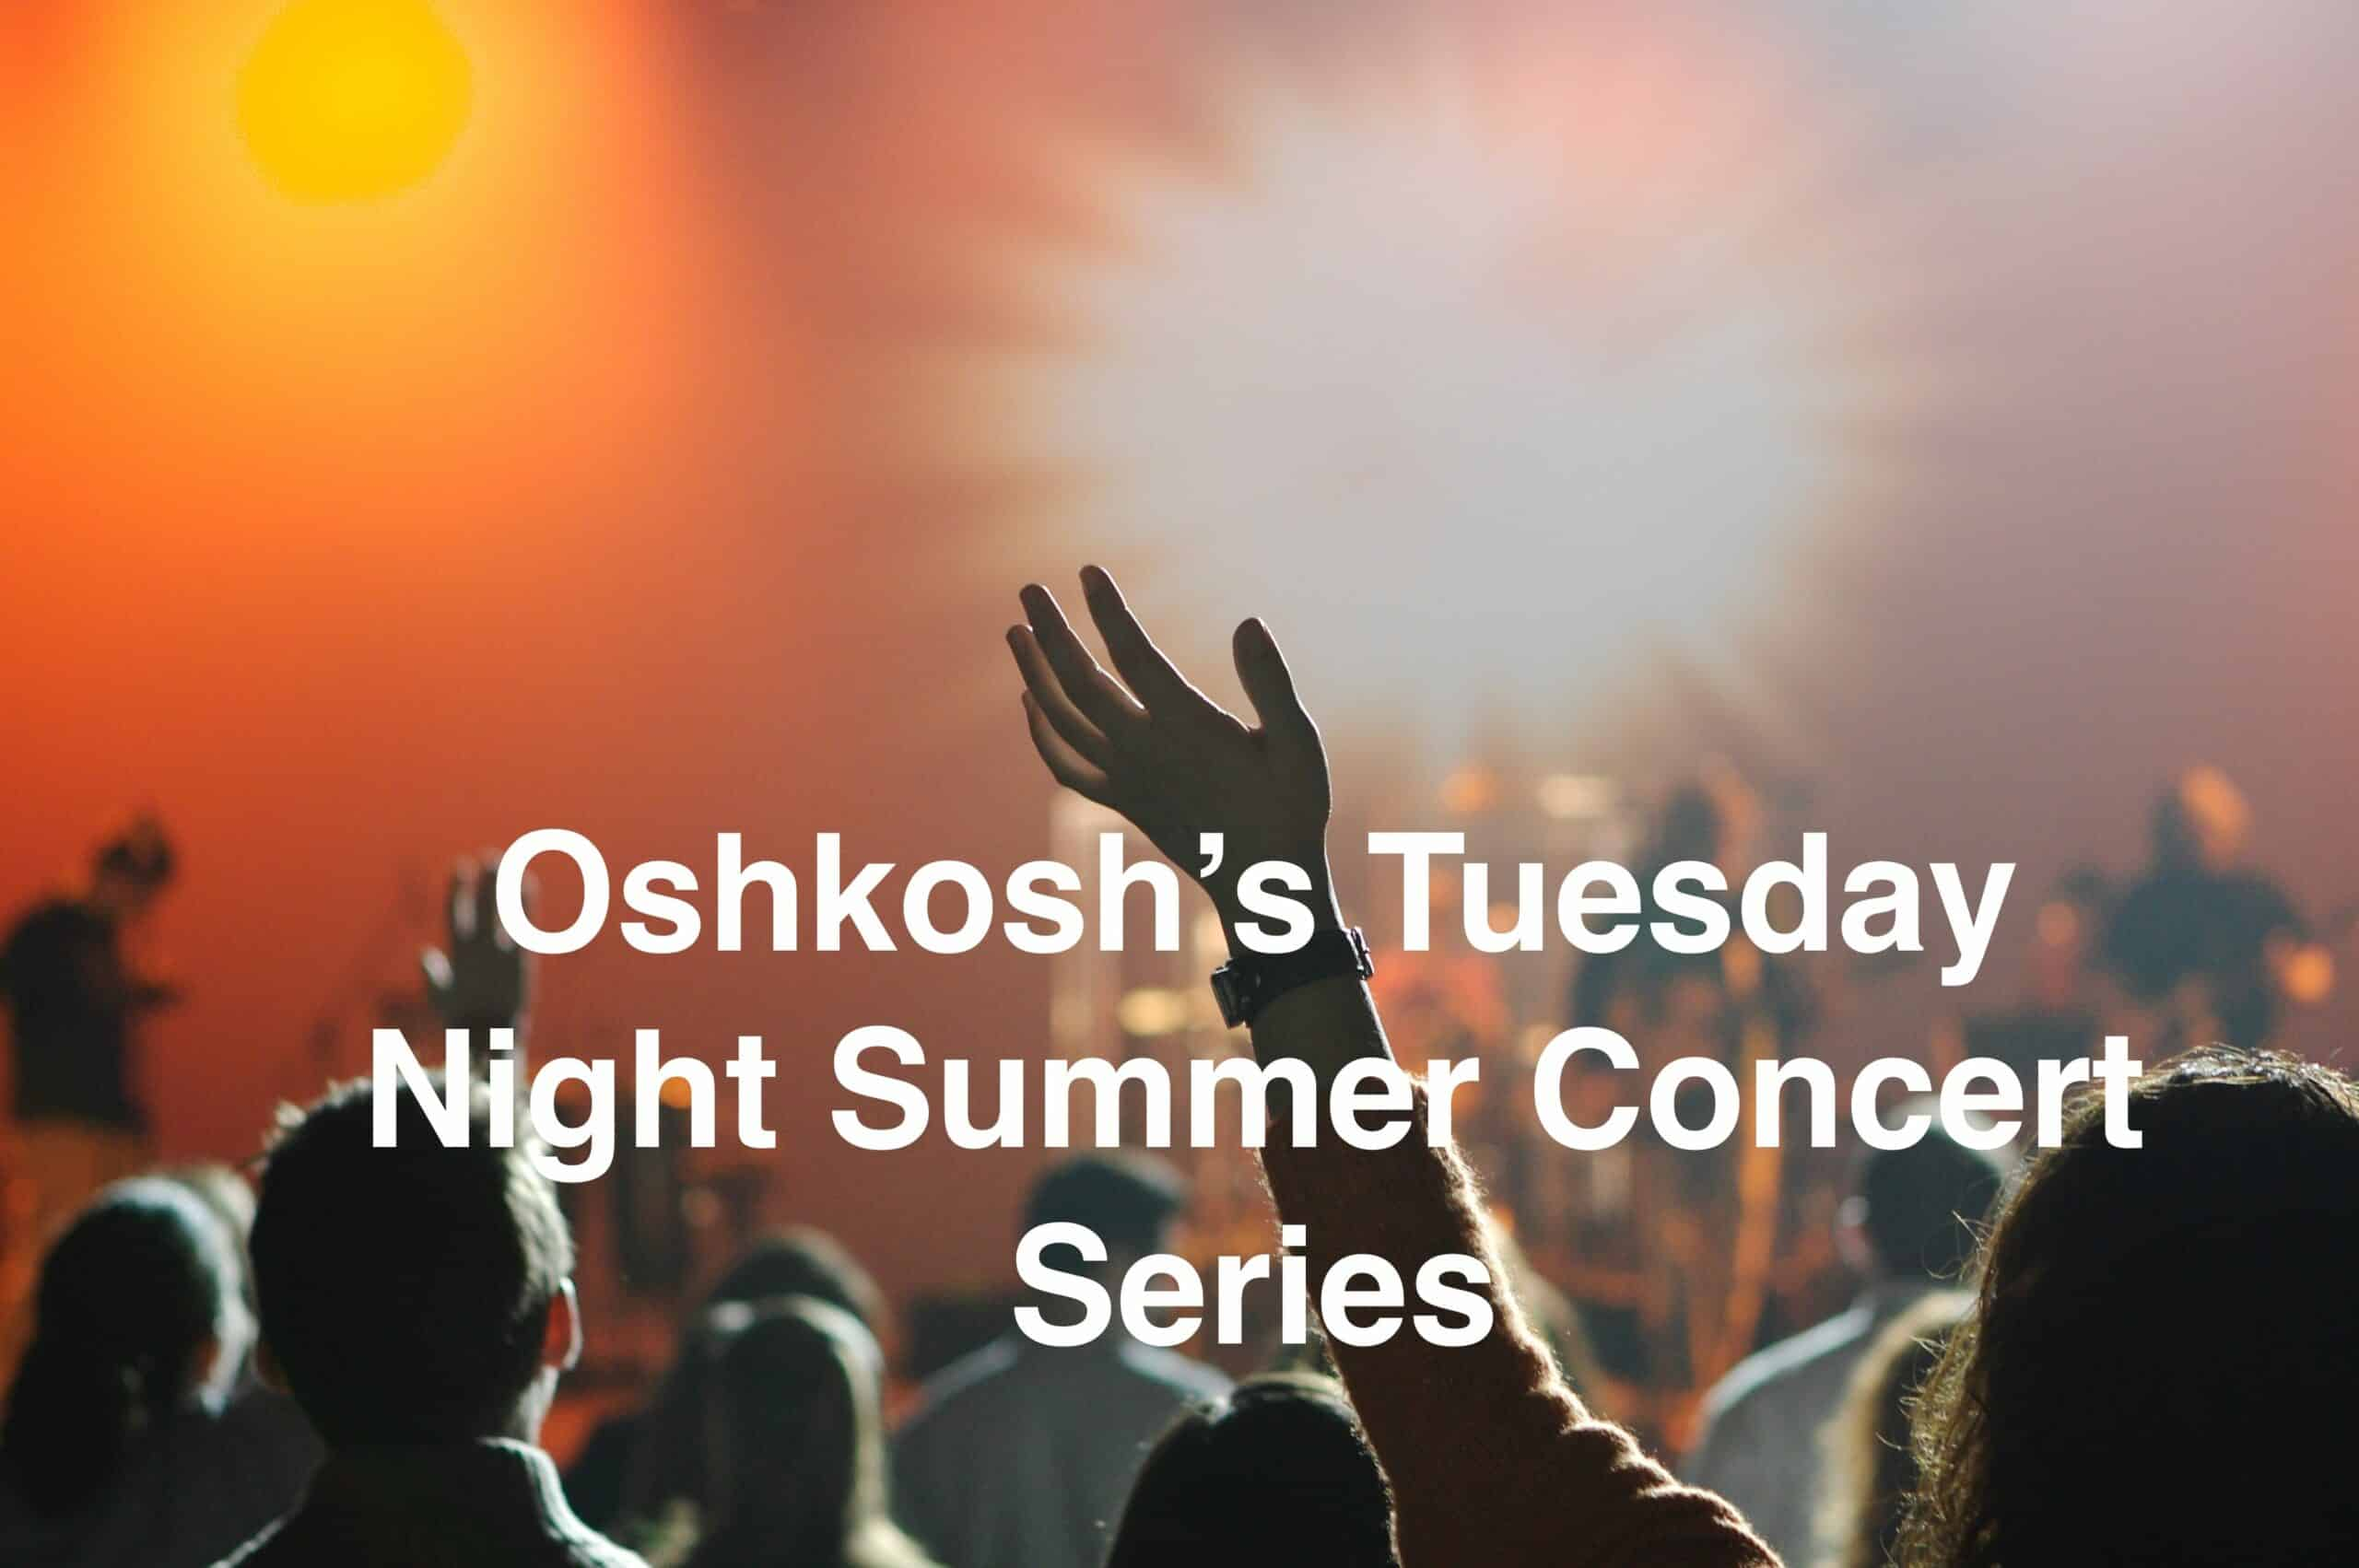 Oshkosh's Tuesday Night Summer Concert Series